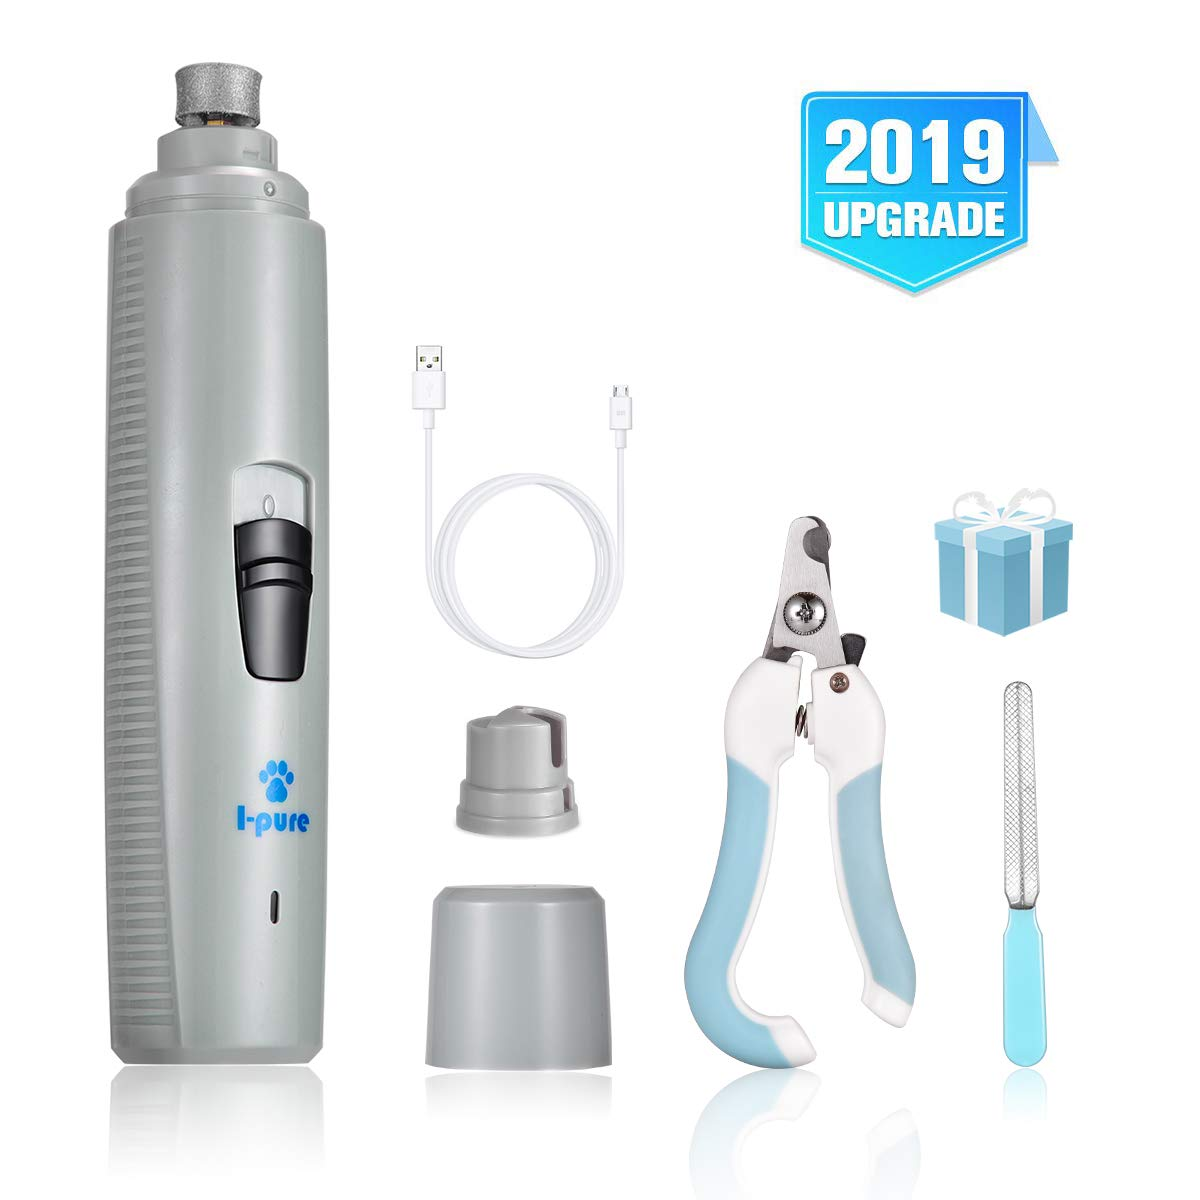 I-pure items Dog Nail Grinder - 2 Speed Pet Nail Grinder Grooming Kit - Electric Paw Trimmer Clipper File Small Medium Large Dogs Cats Portable & Rechargeable Gentle Painless Paws Grooming